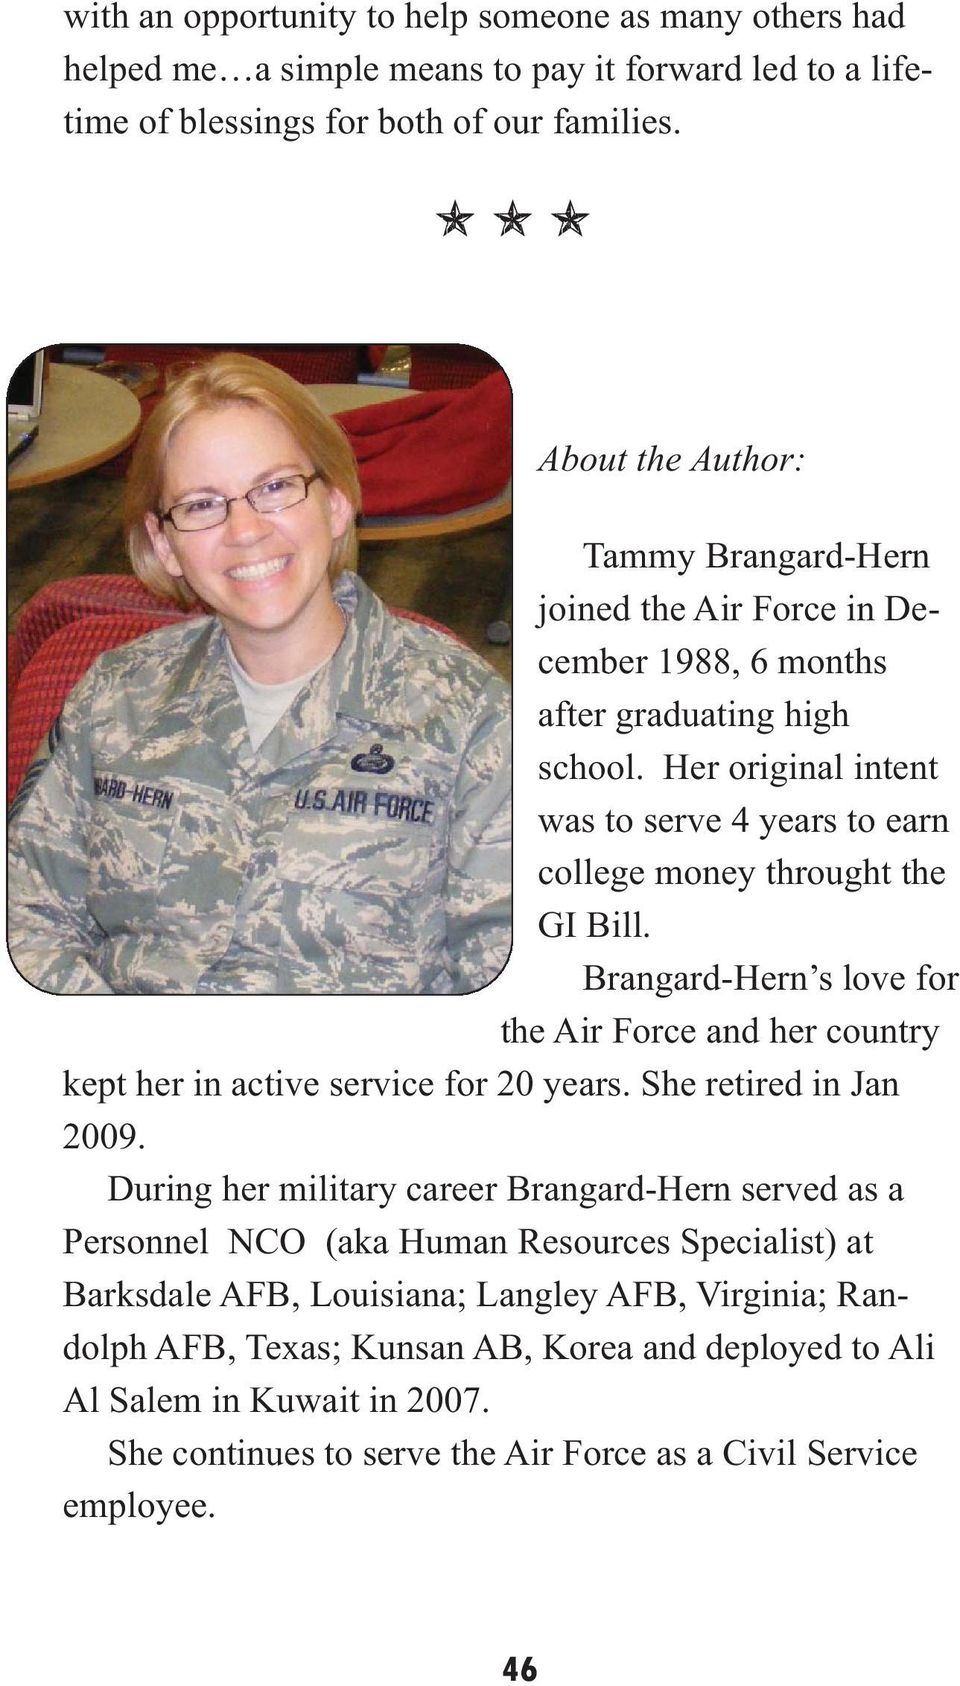 Her original intent was to serve 4 years to earn college money throught the GI Bill. Brangard-Hern s love for the Air Force and her country kept her in active service for 20 years.